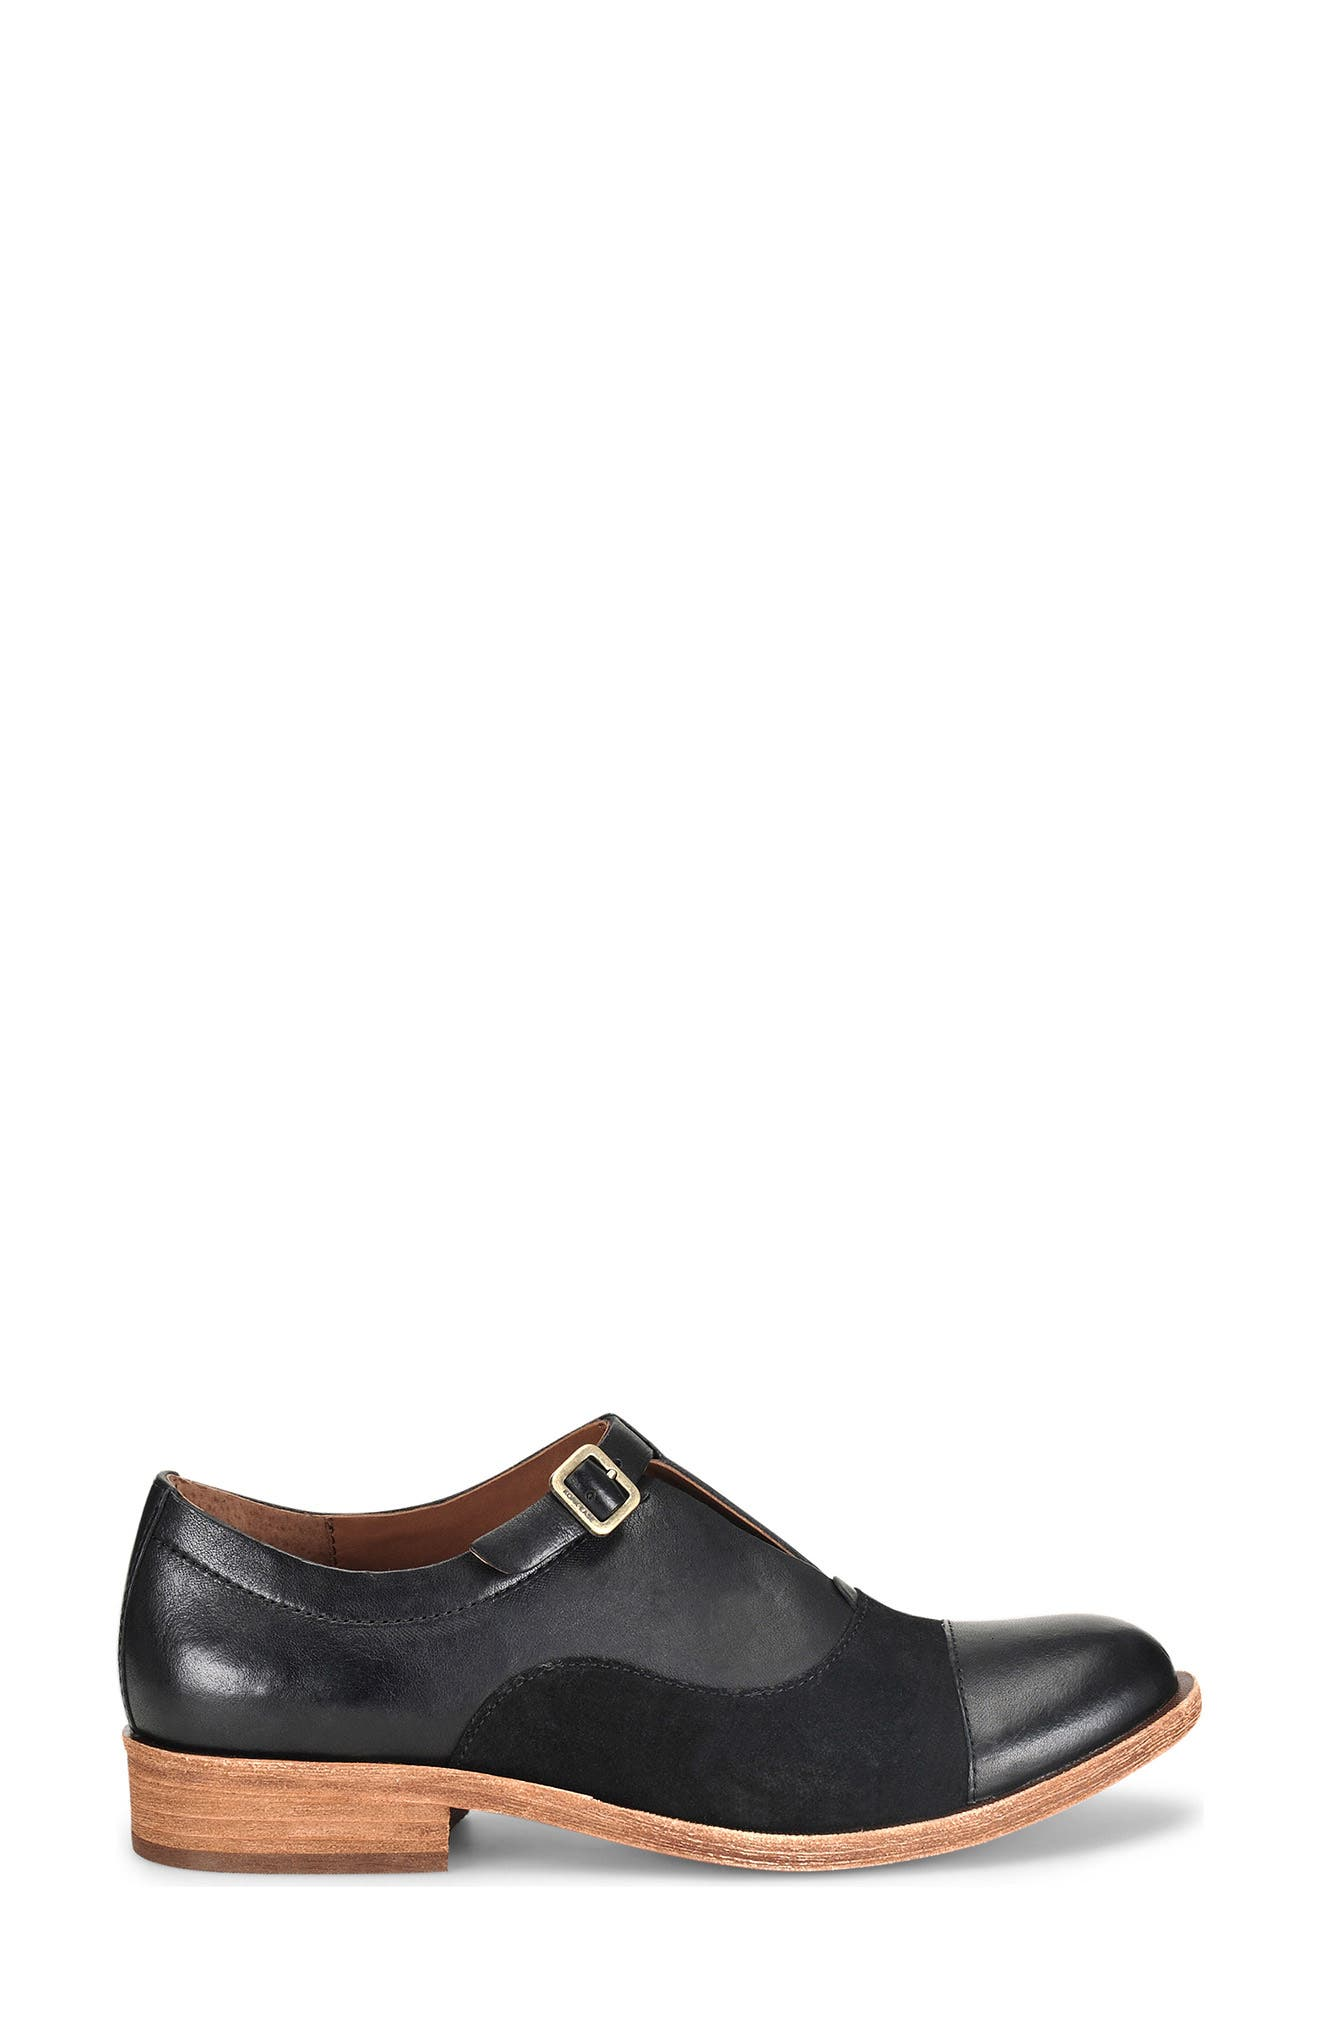 'Niseda' Oxford,                             Alternate thumbnail 5, color,                             Black Leather Suede Combo